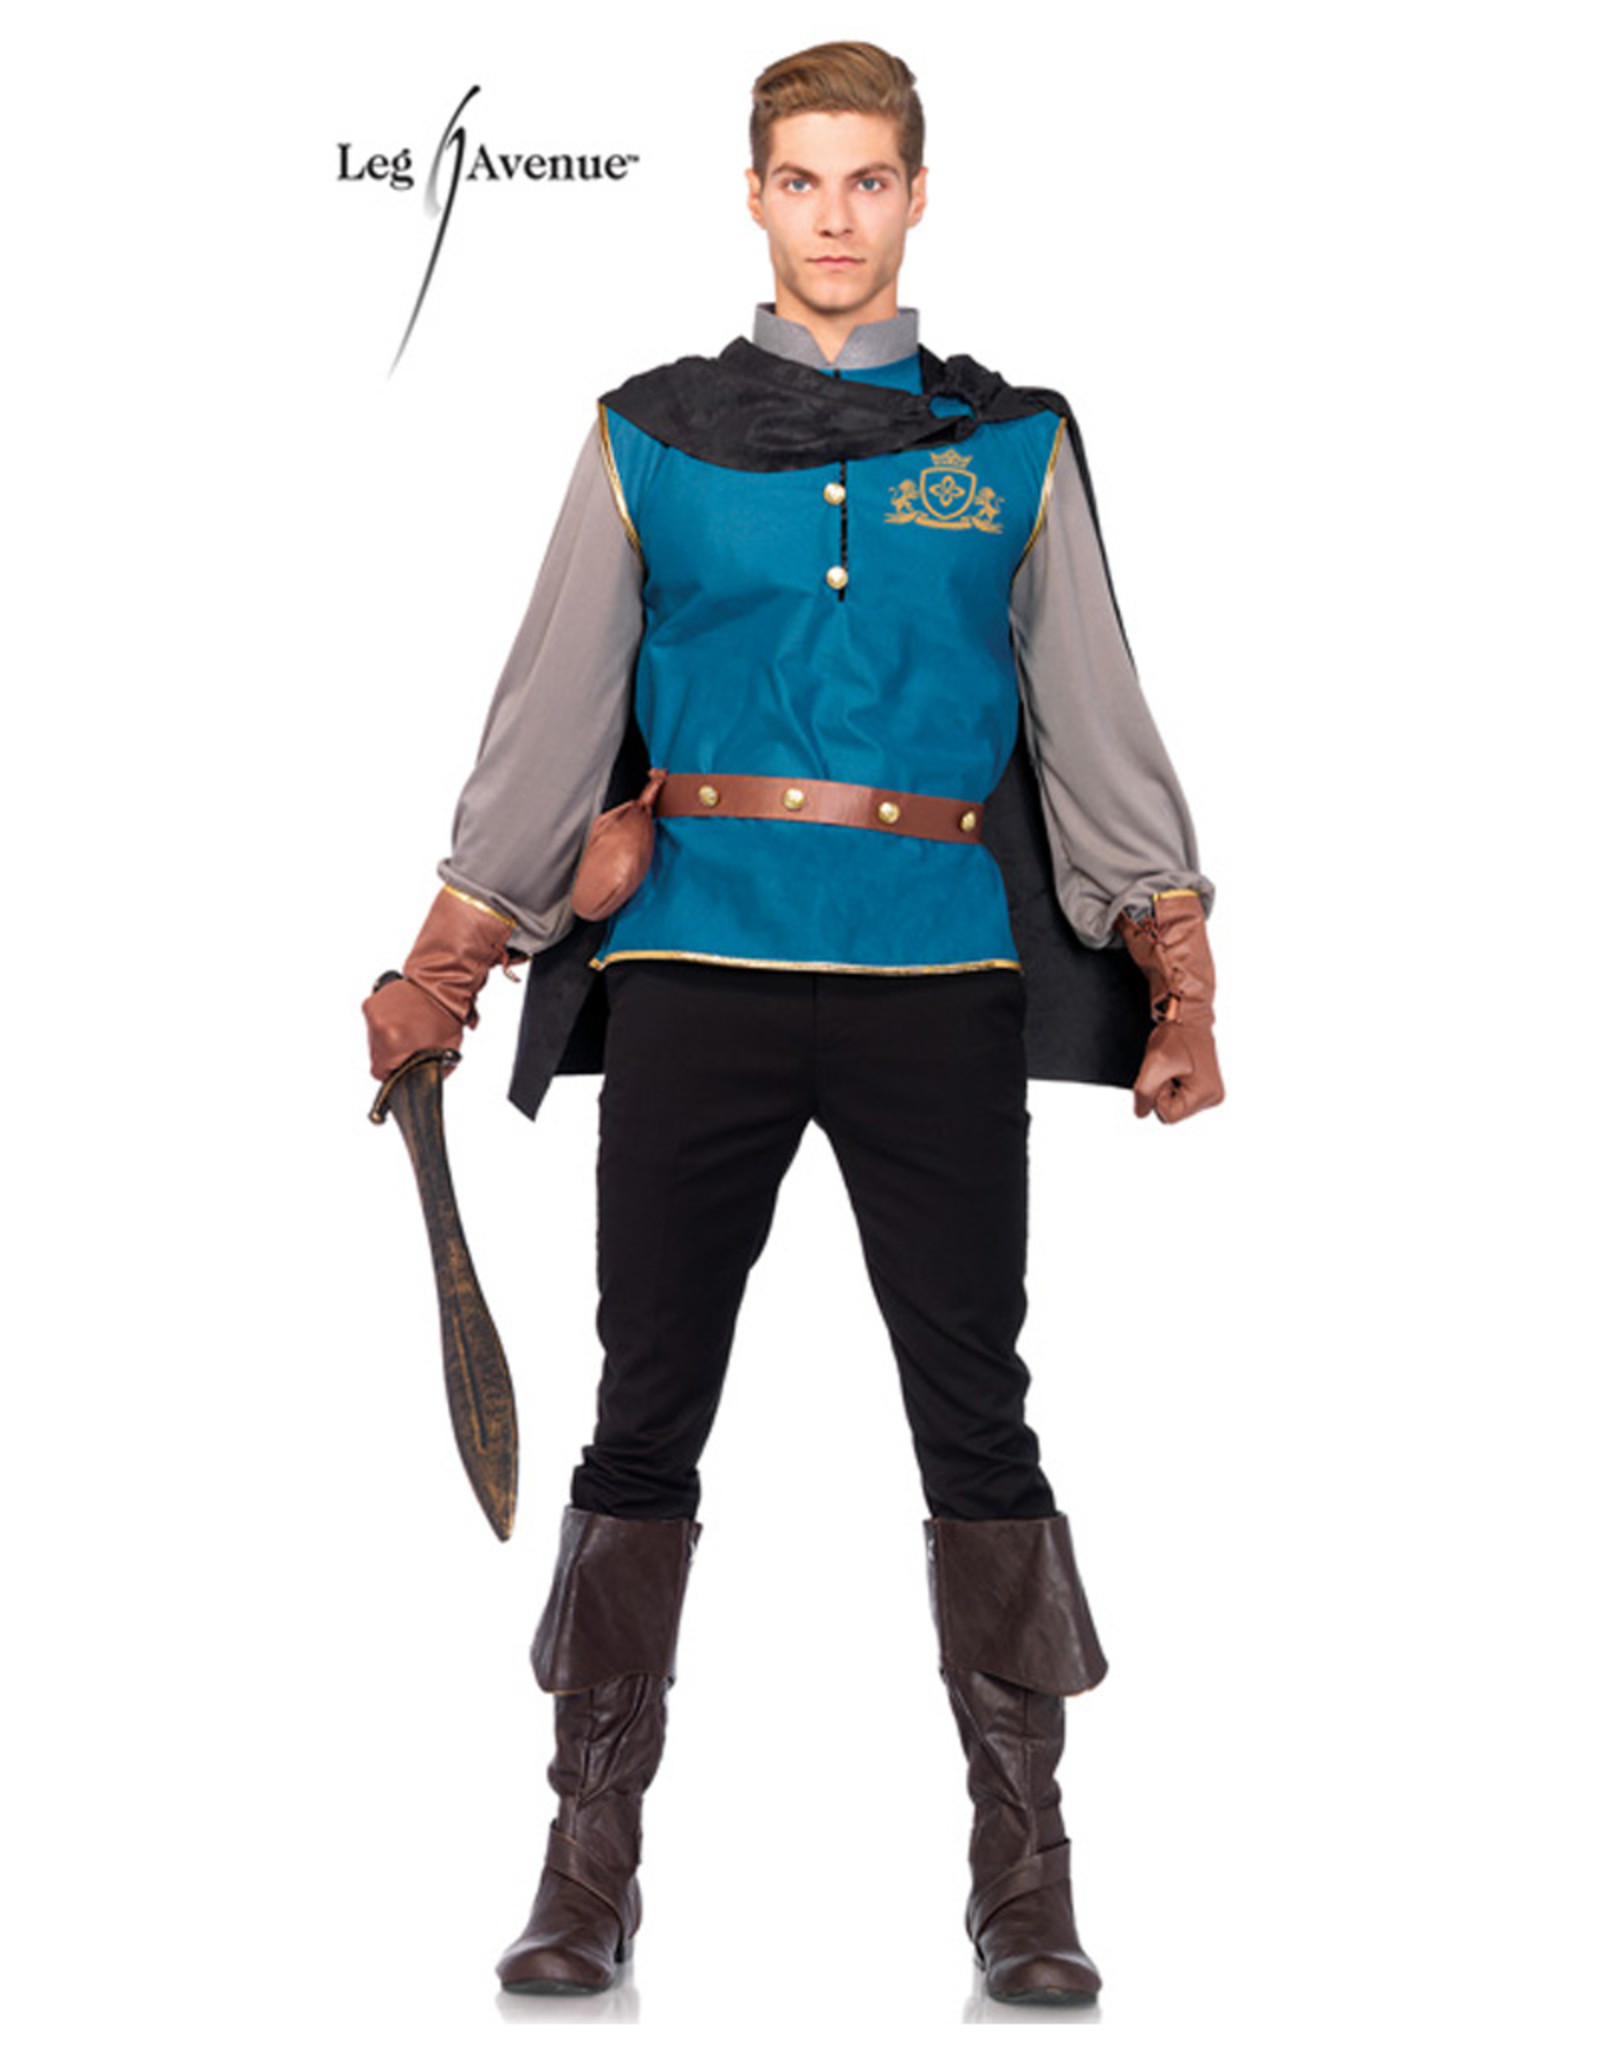 Storybook Prince Costume - Men's